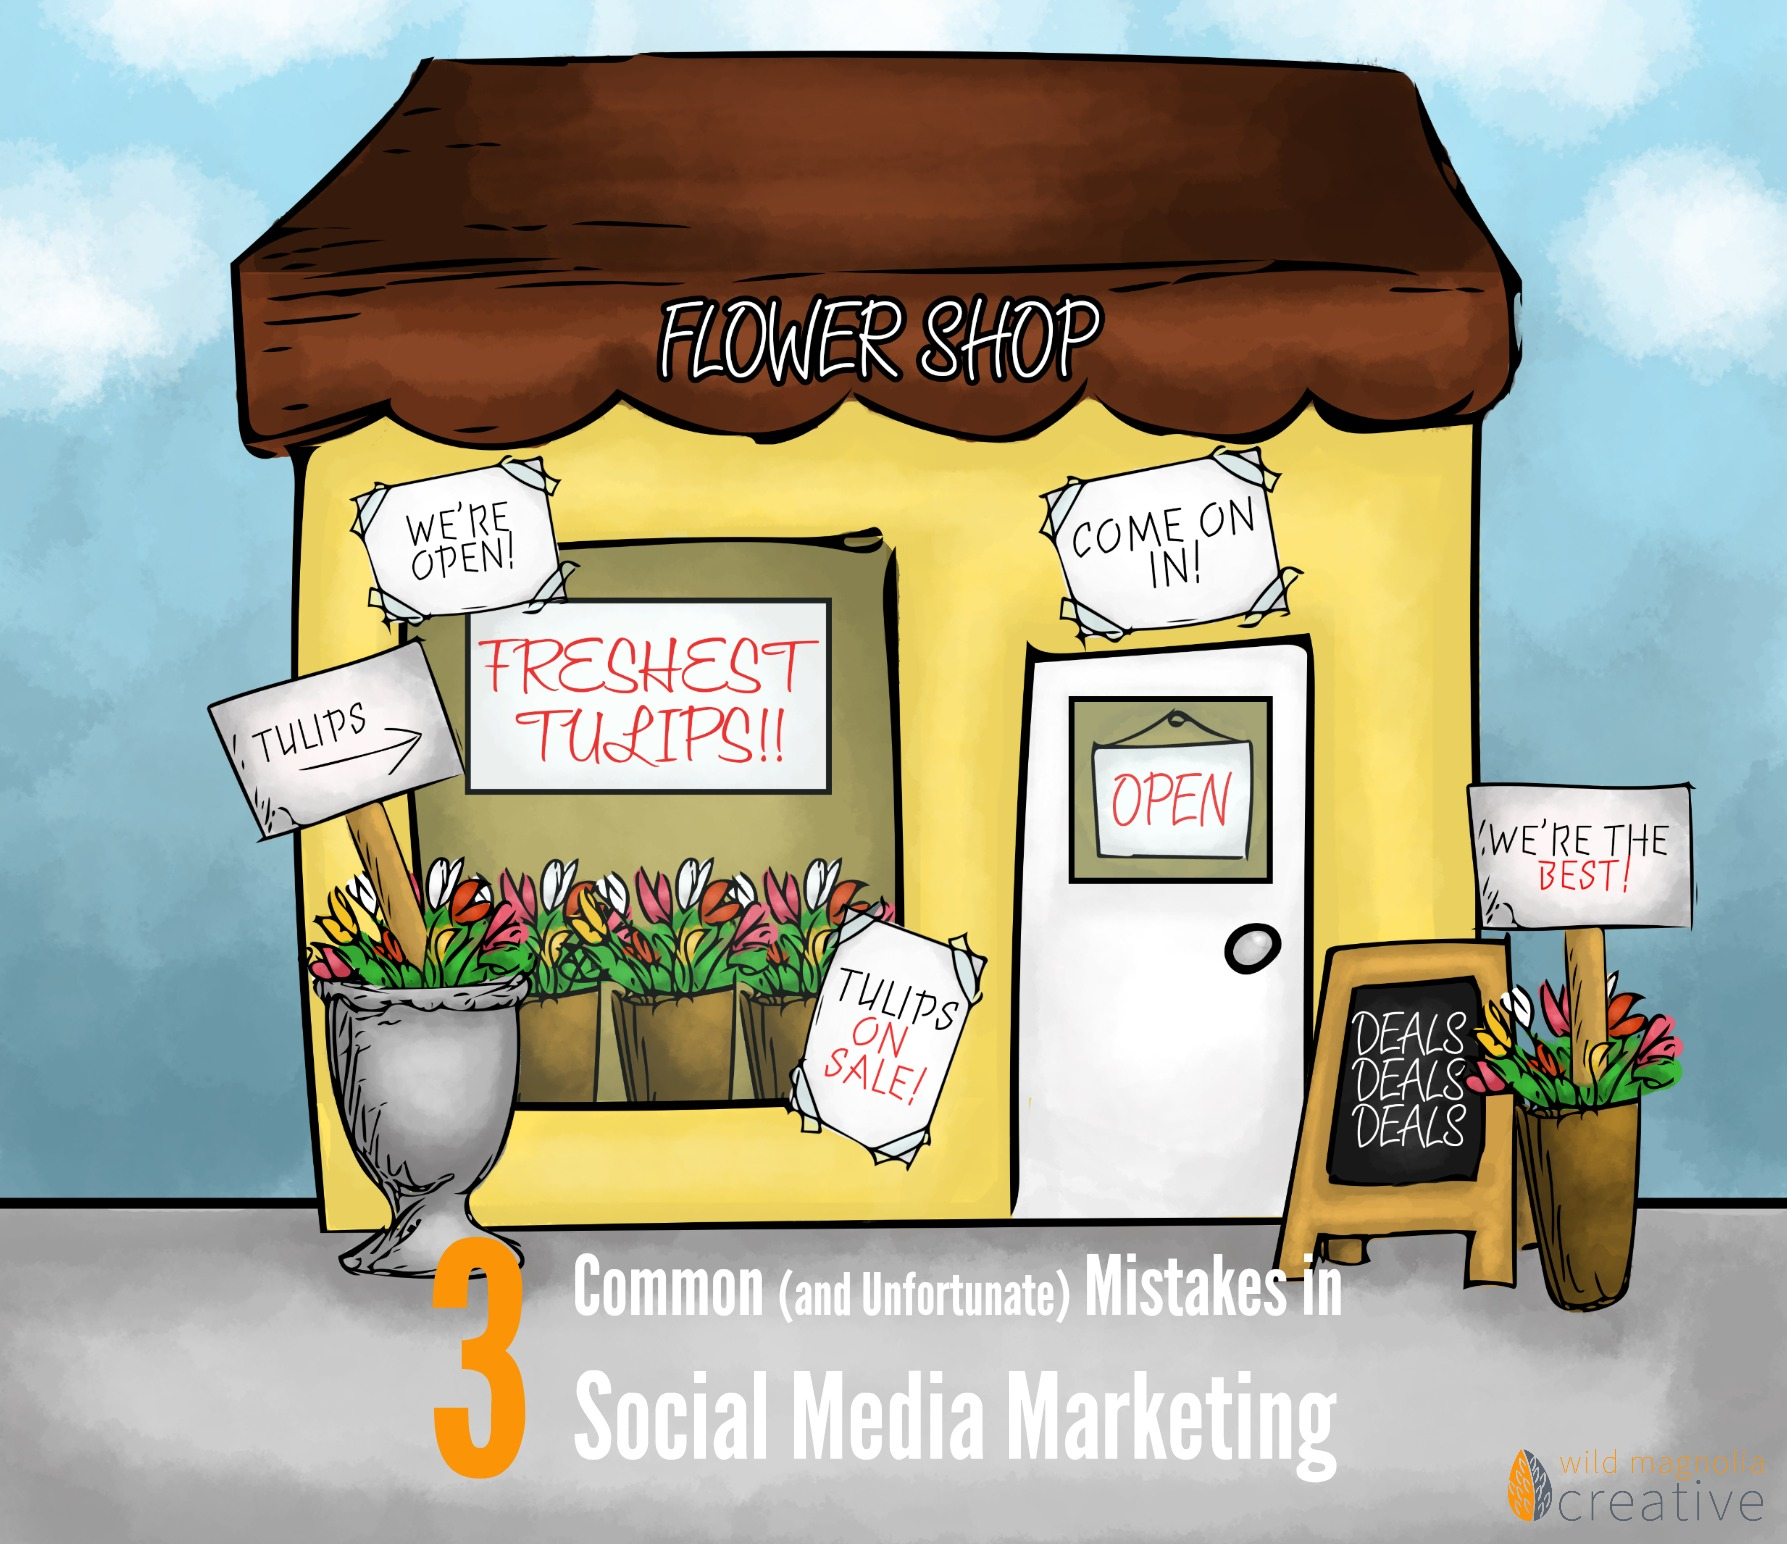 3 Common Mistakes in SMM